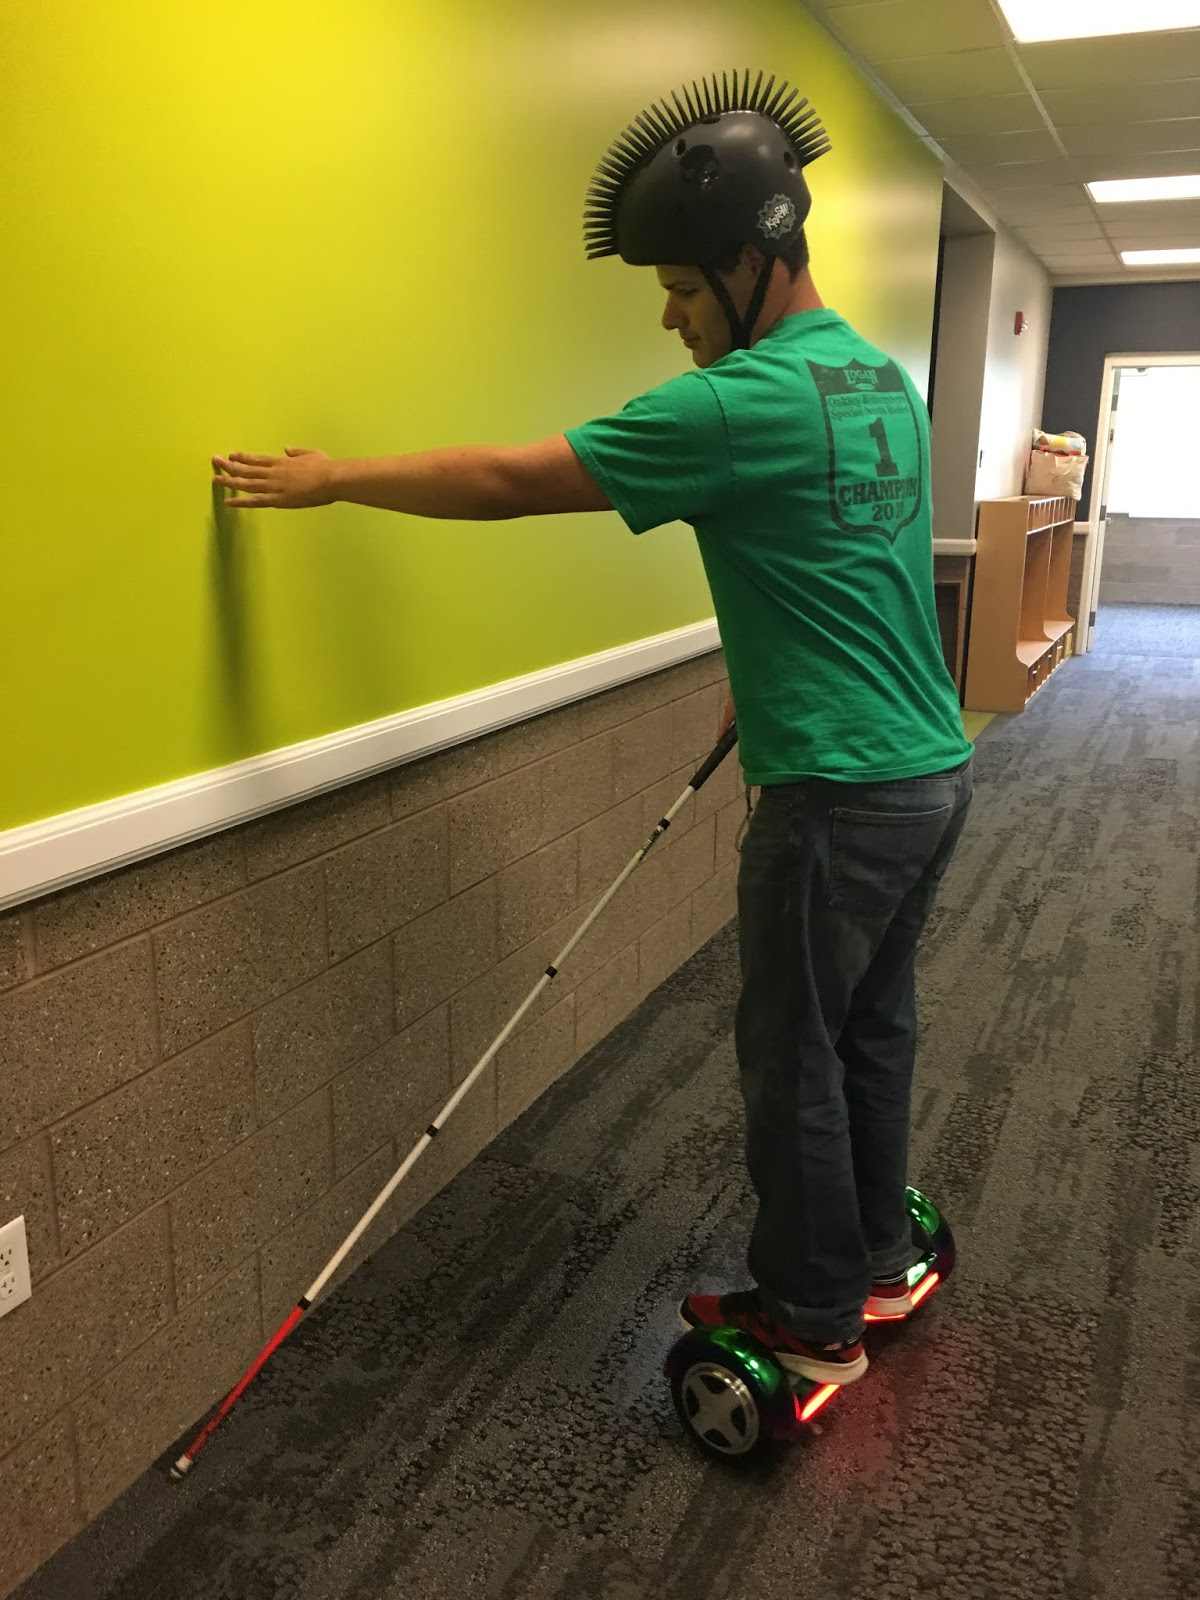 a male teenager moves on the hoverboard and uses his cane